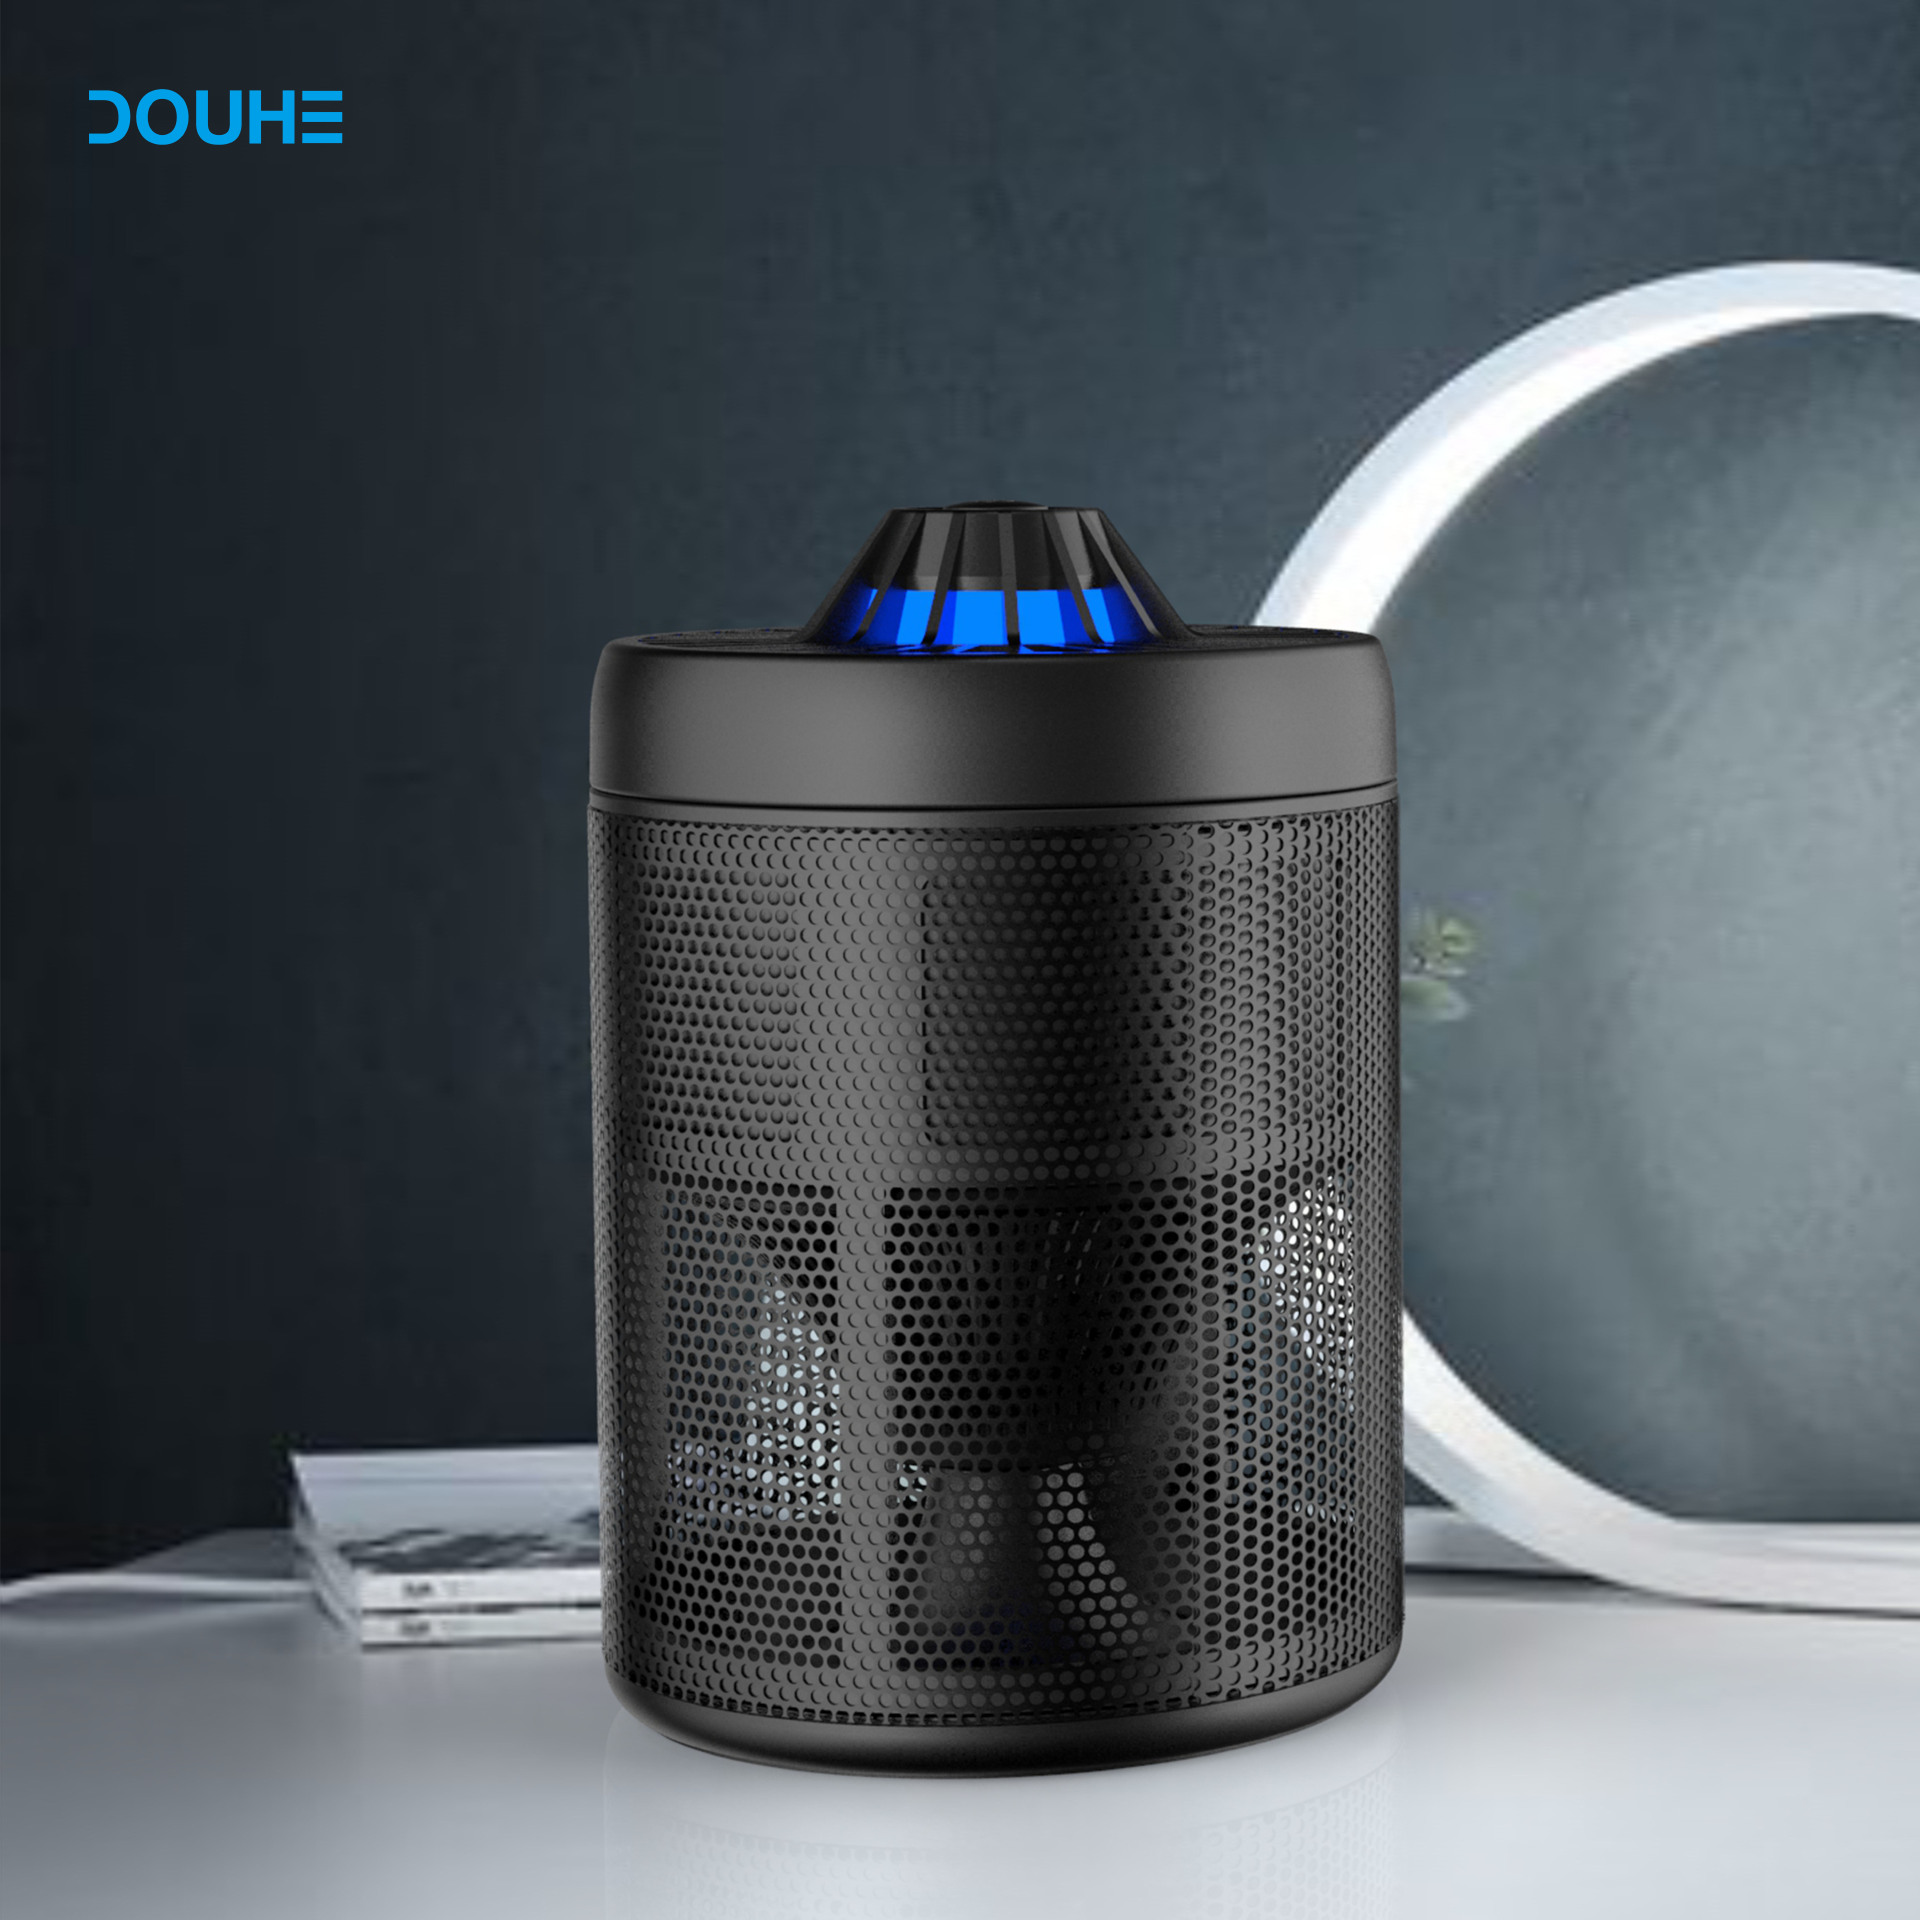 DOUHE Bug Zapper, Mosquito Killer Trap - Mosquito Trap Light